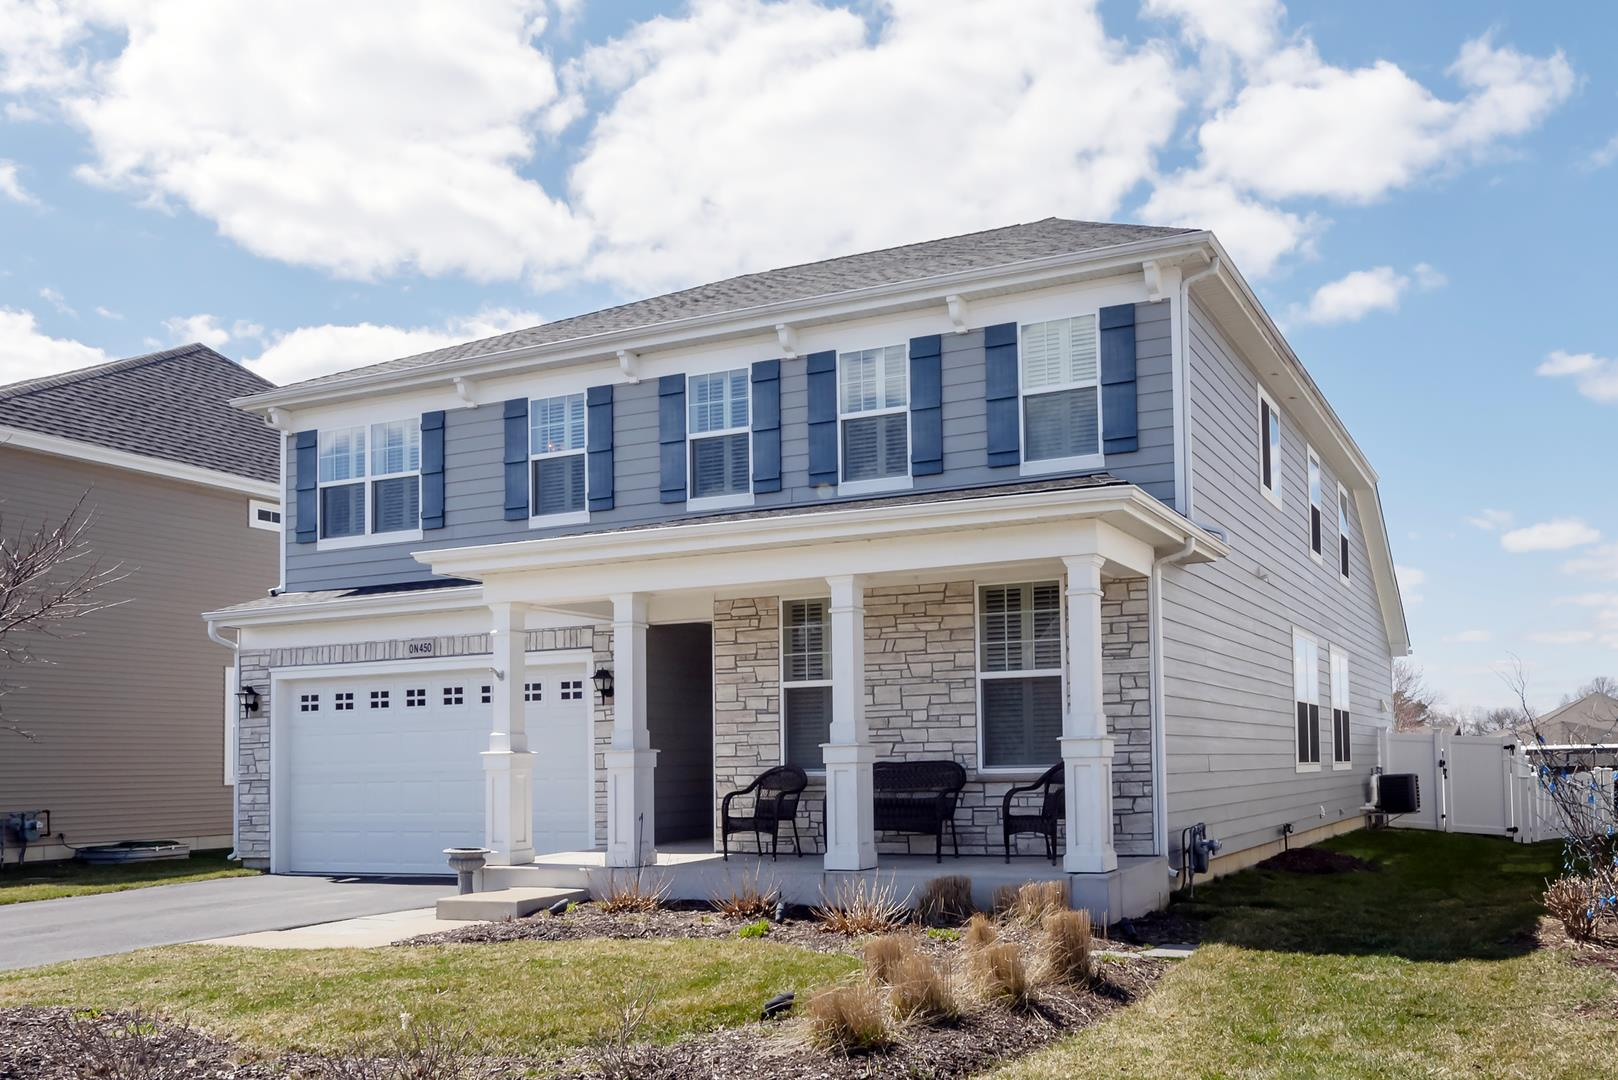 0N450 Silverwood Court, Winfield, IL 60190 - #: 11010706